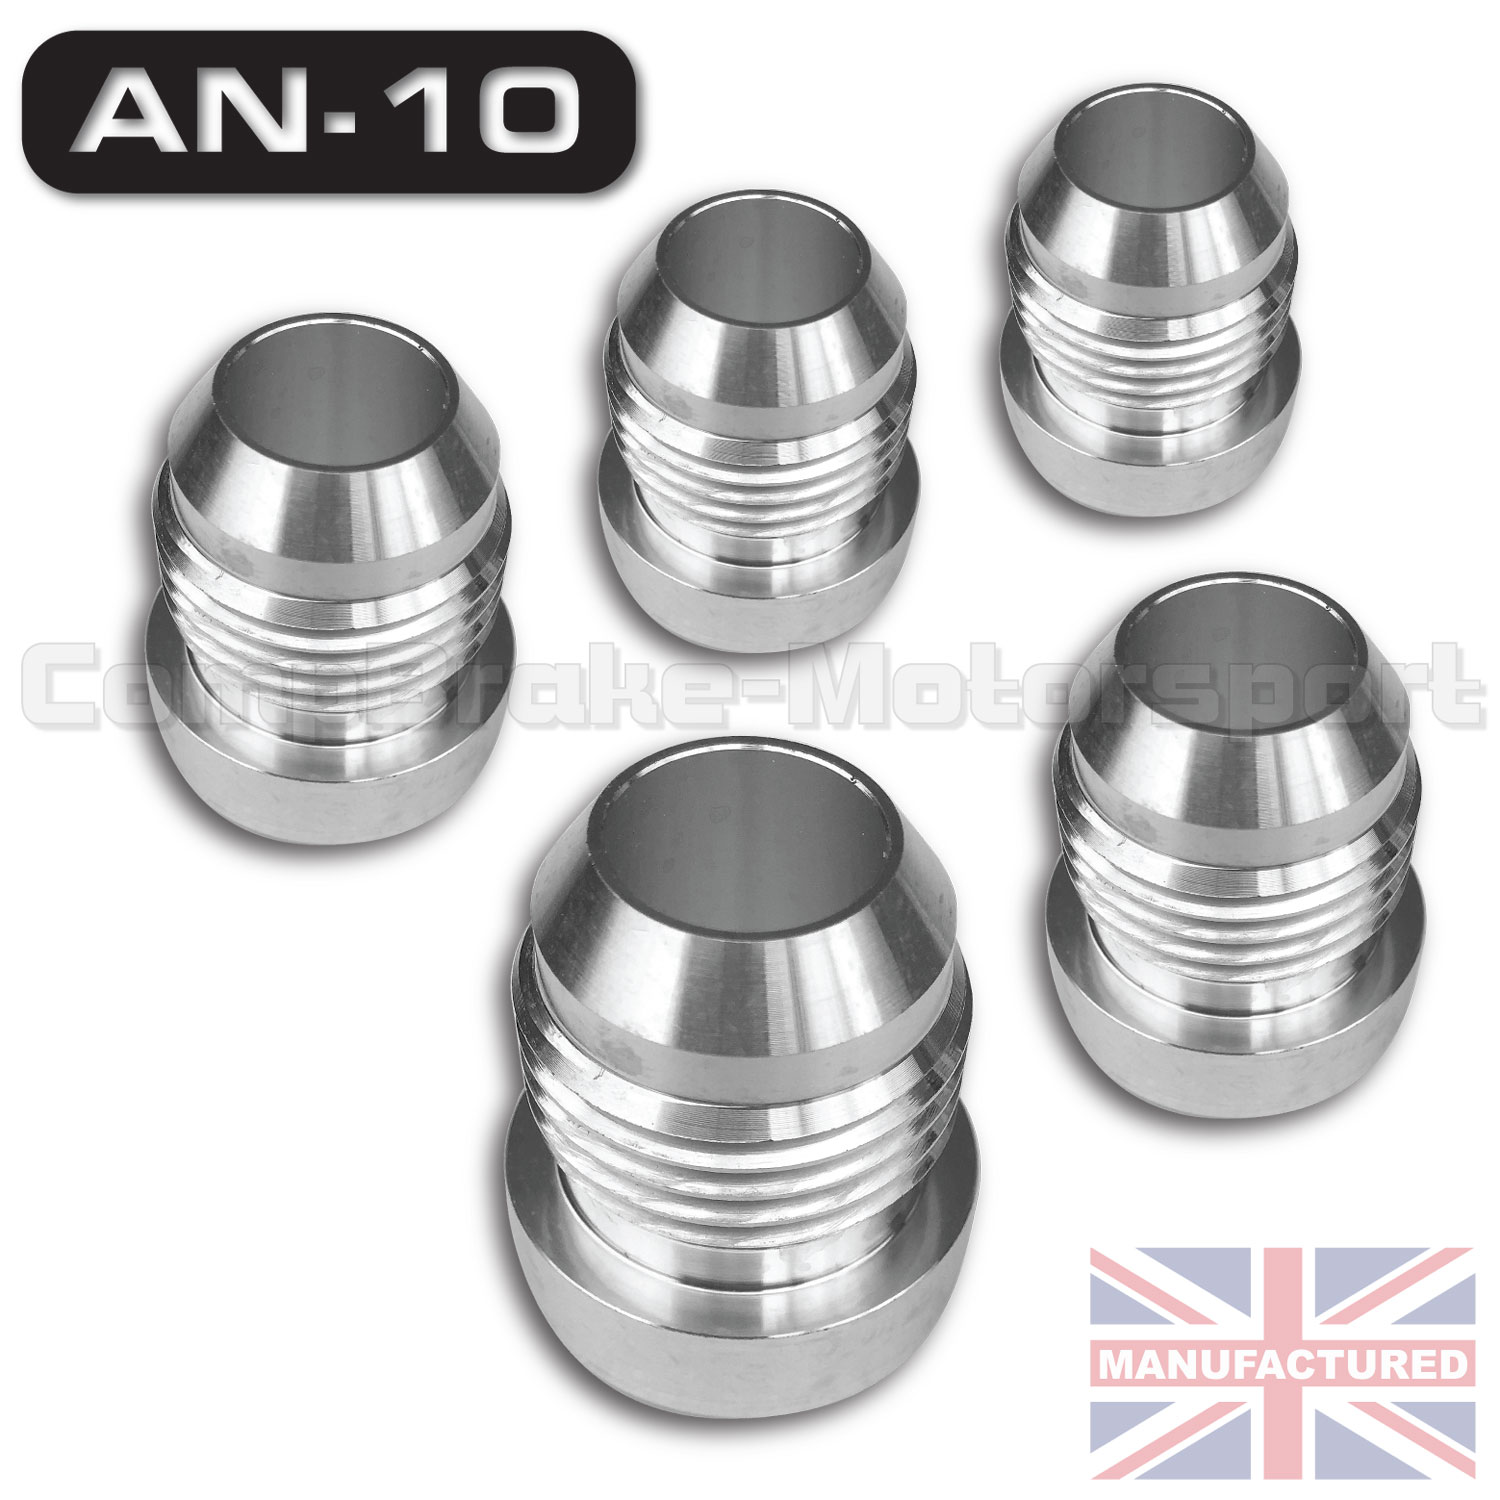 Weld On Jic An 10 Male Aluminium Tank Fitting X5 Tank